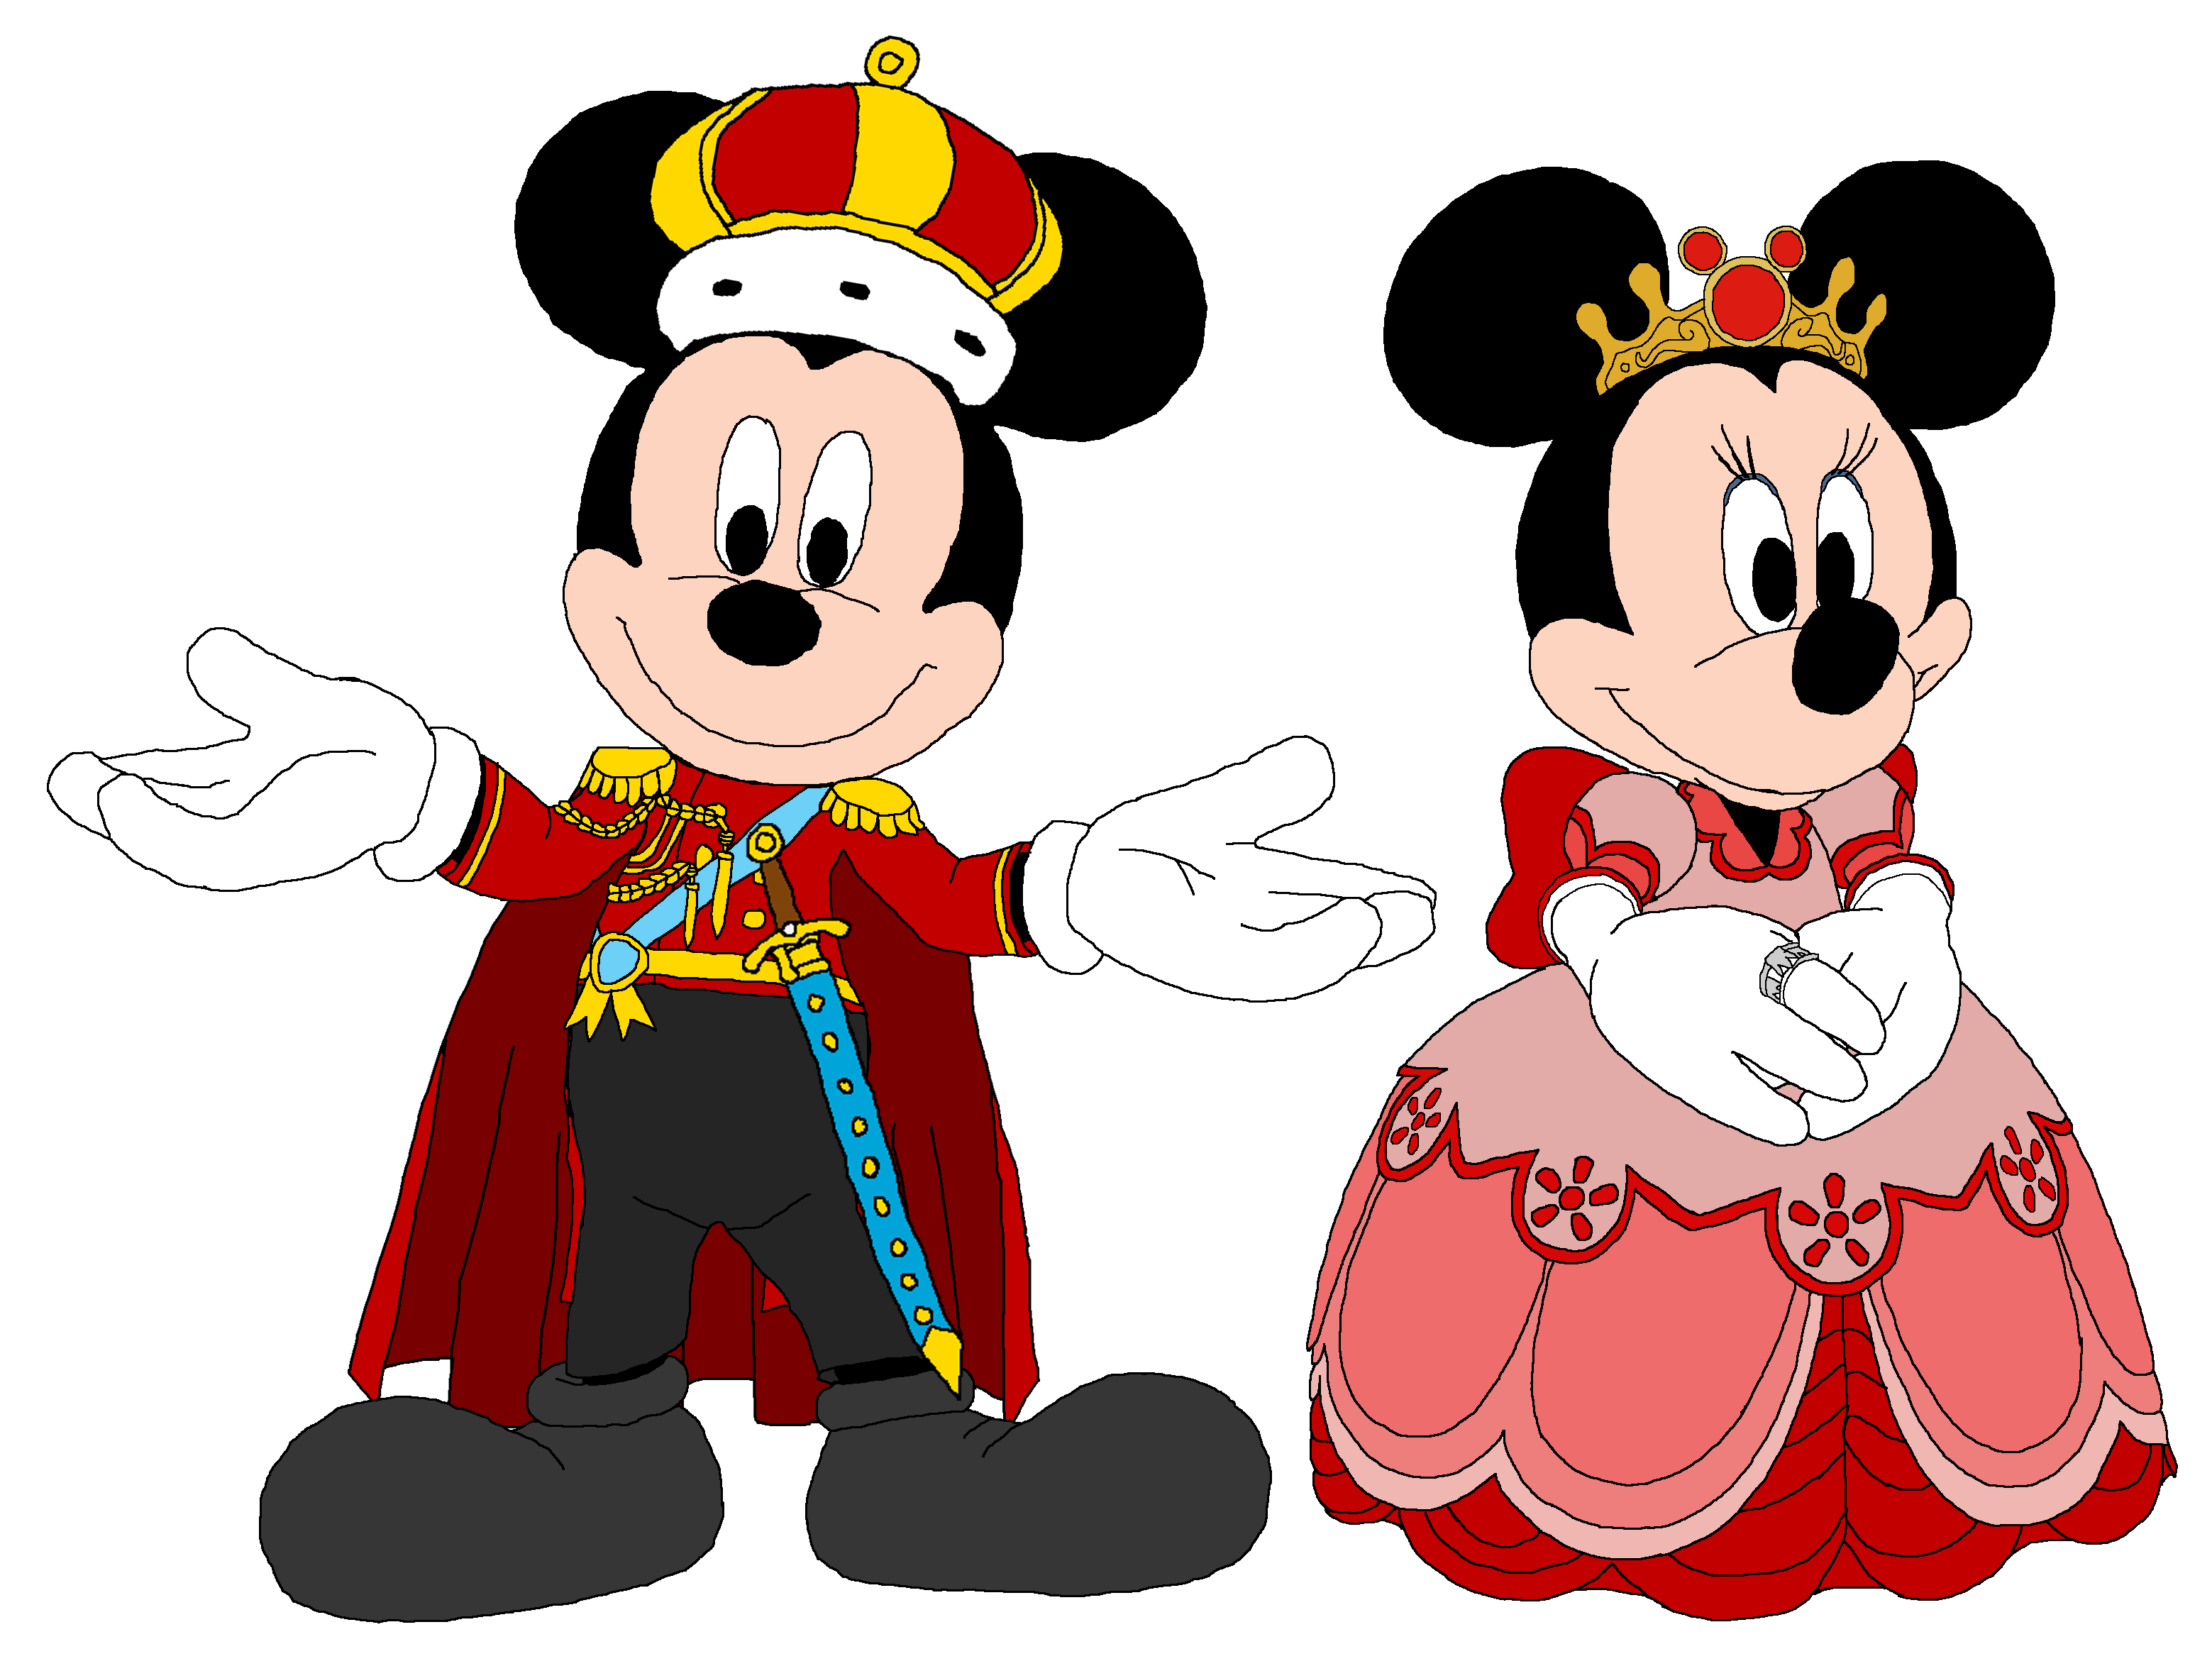 King Mickey and reyna Minnie - Kingdom Hearts